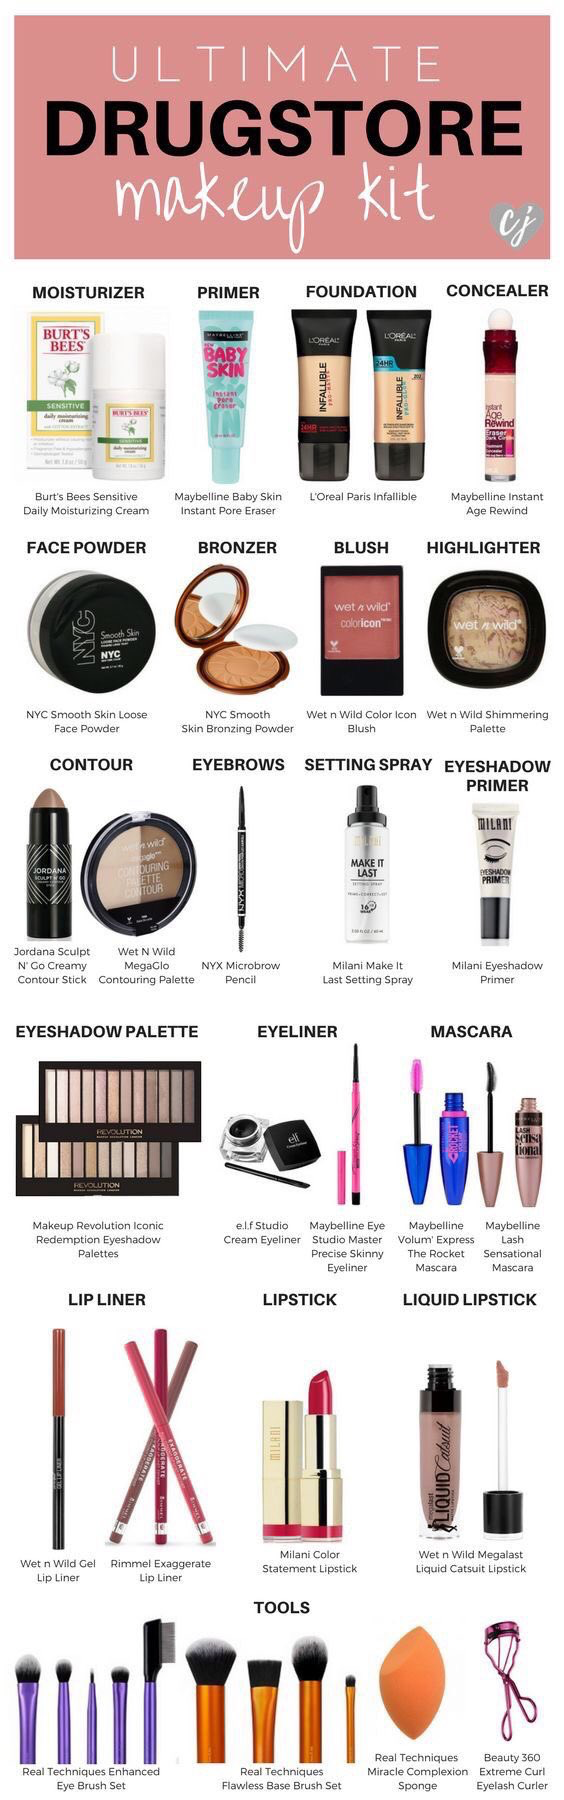 Complete Makeup Kit List Items Needed m Best makeup